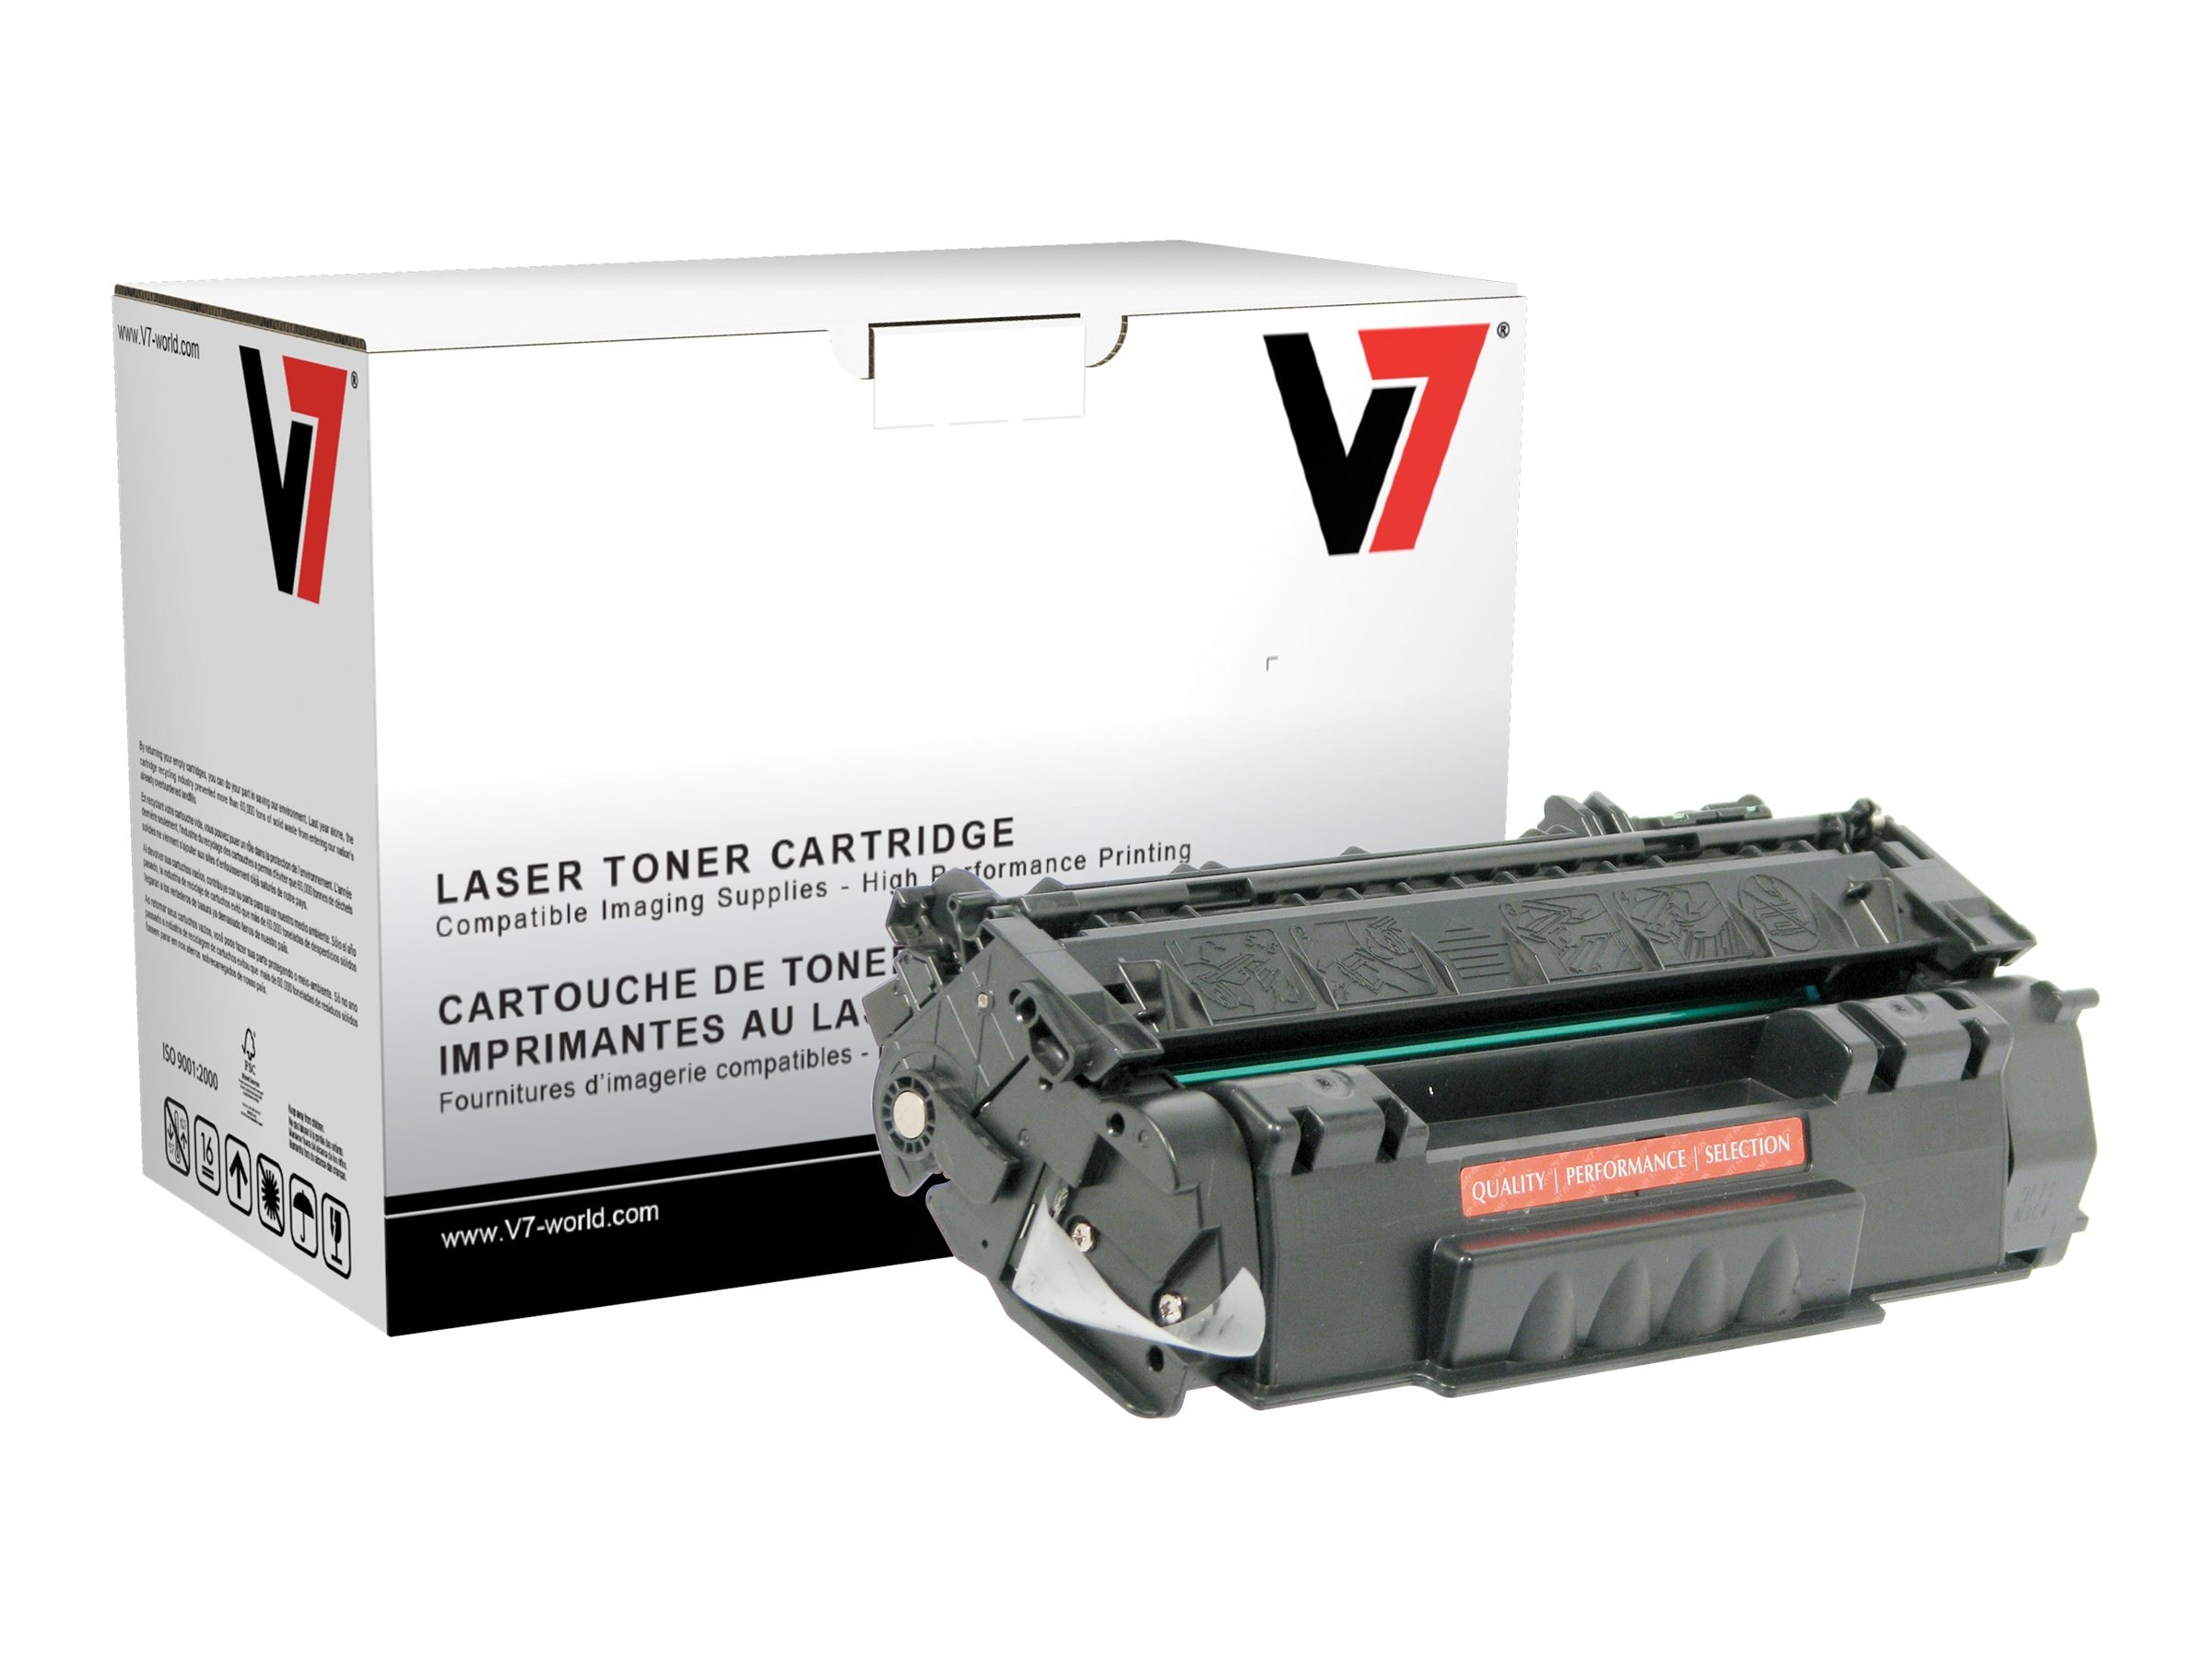 V7 Q7553A Black MICR Toner Cartridge for HP LaserJet P2015 (TAA Compliant), THK27553AM, 13757521, Toner and Imaging Components